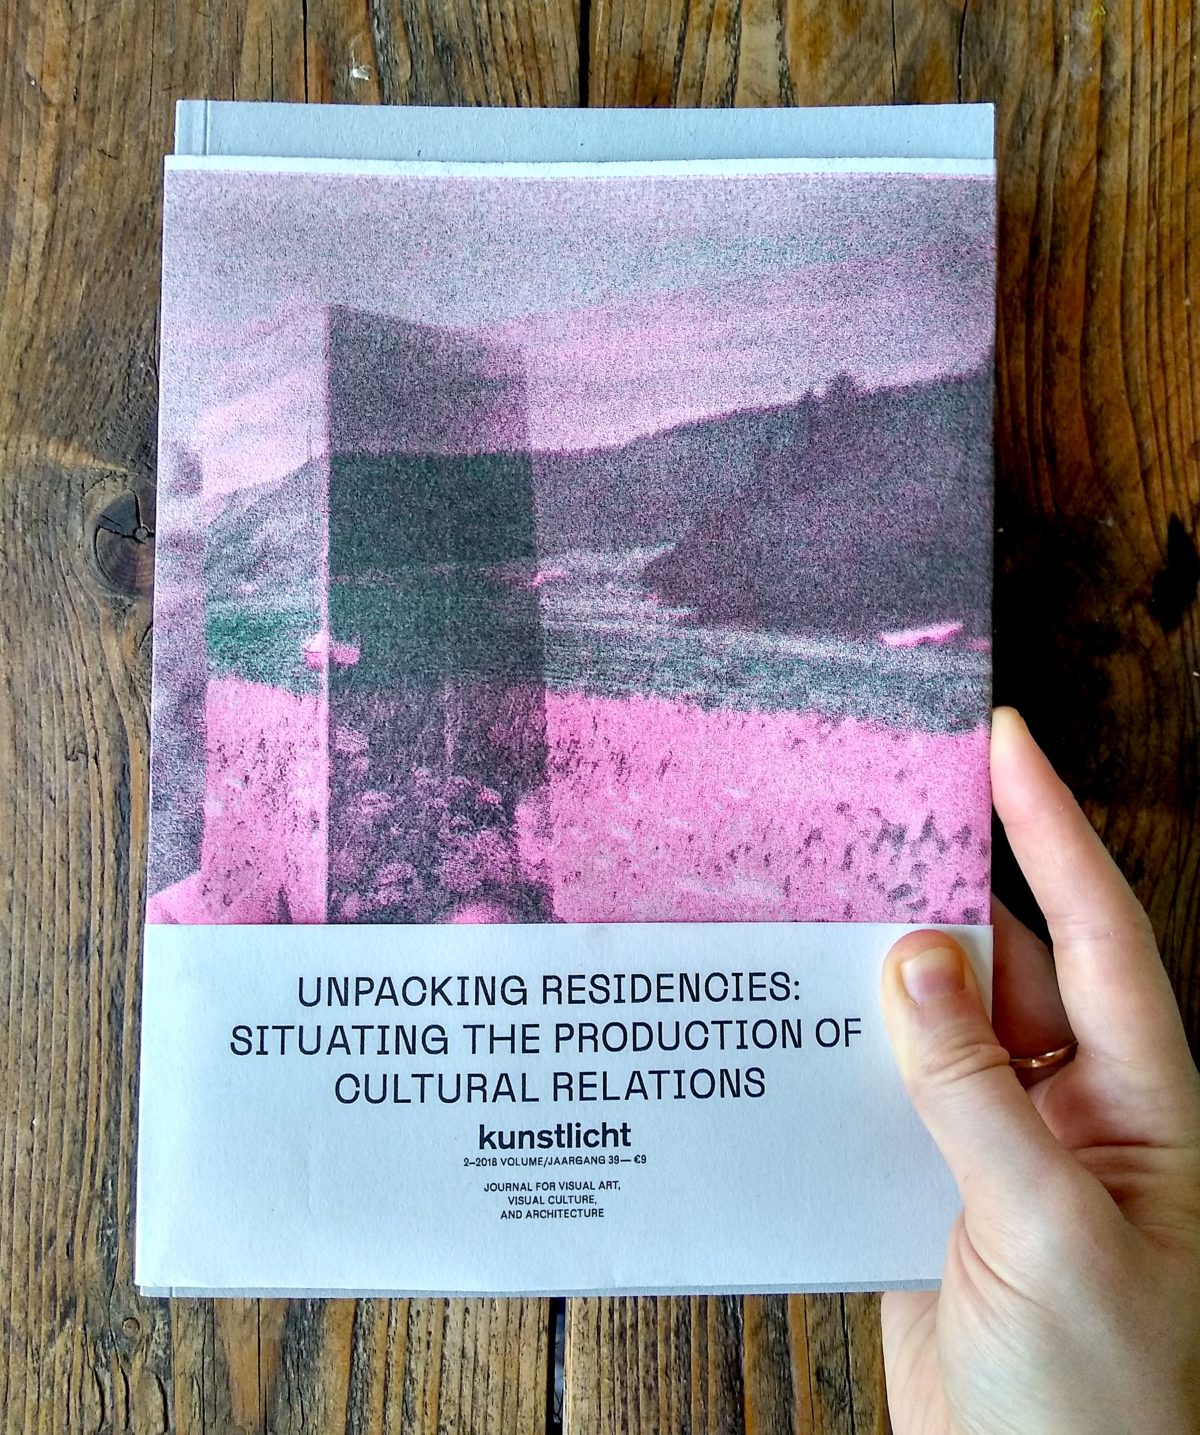 VOL. 39, NO 2, 2018, UNPACKING RESIDENCIES: SITUATING THE PRODUCTION OF CULTURAL RELATIONS